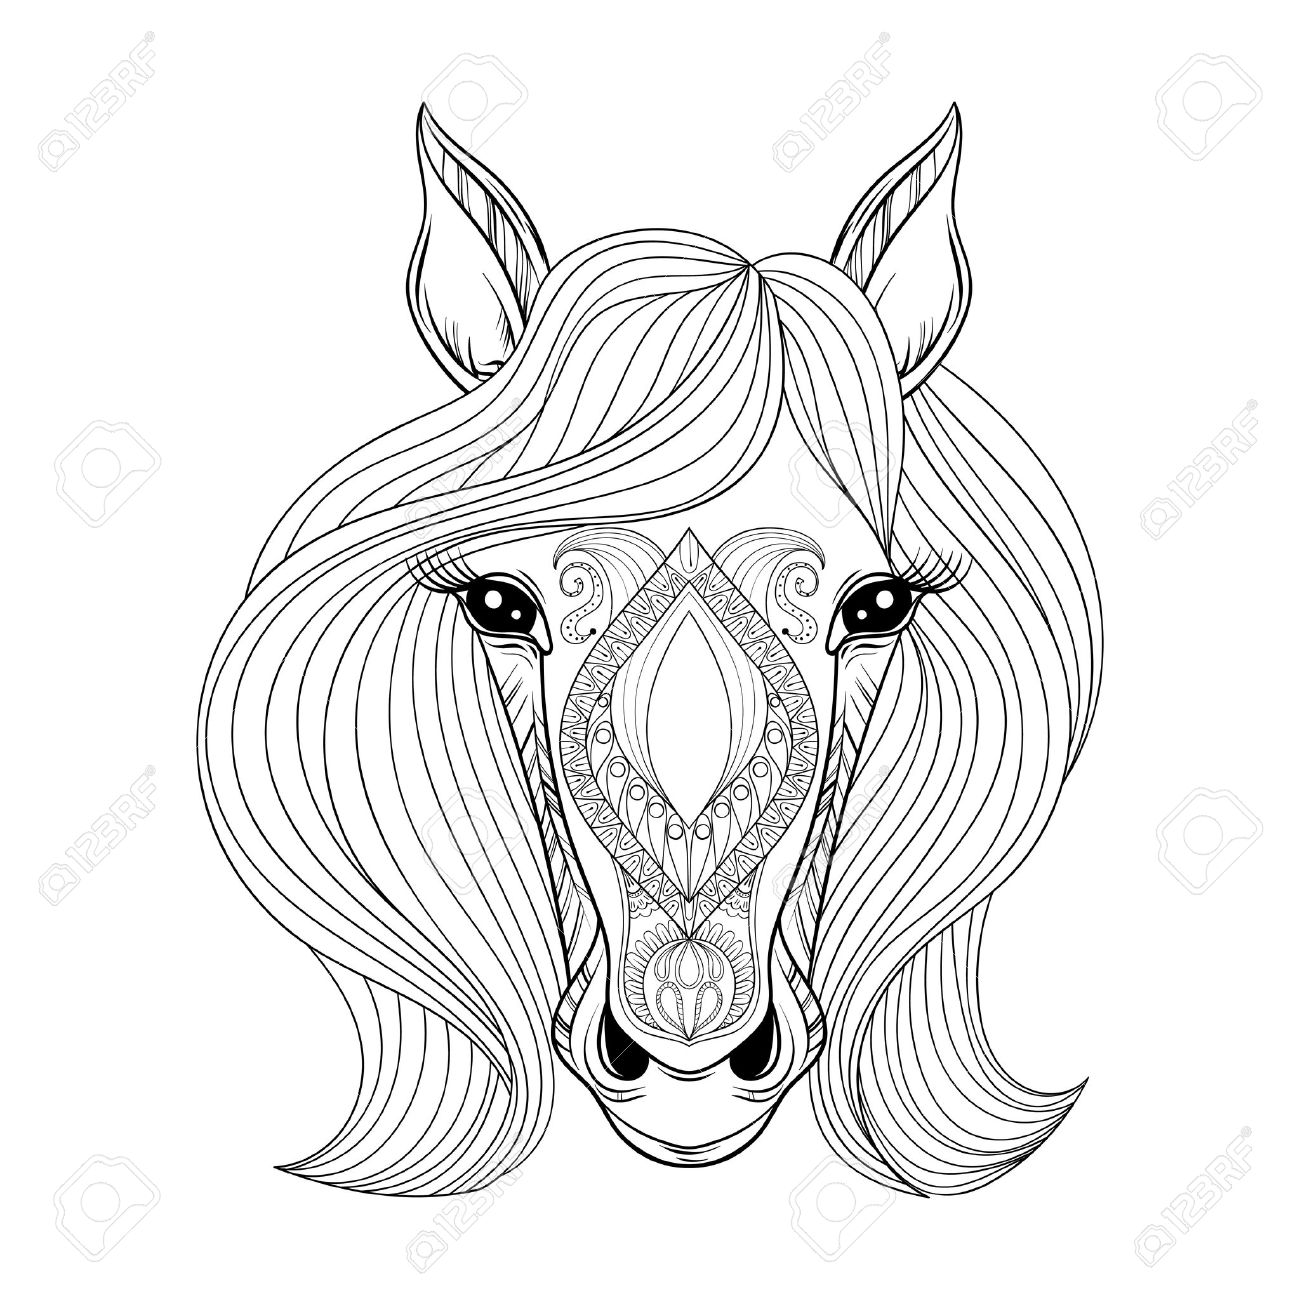 1300x1300 Vector Horse. Coloring Page With Zentangled Horse Face. Hand Drawn